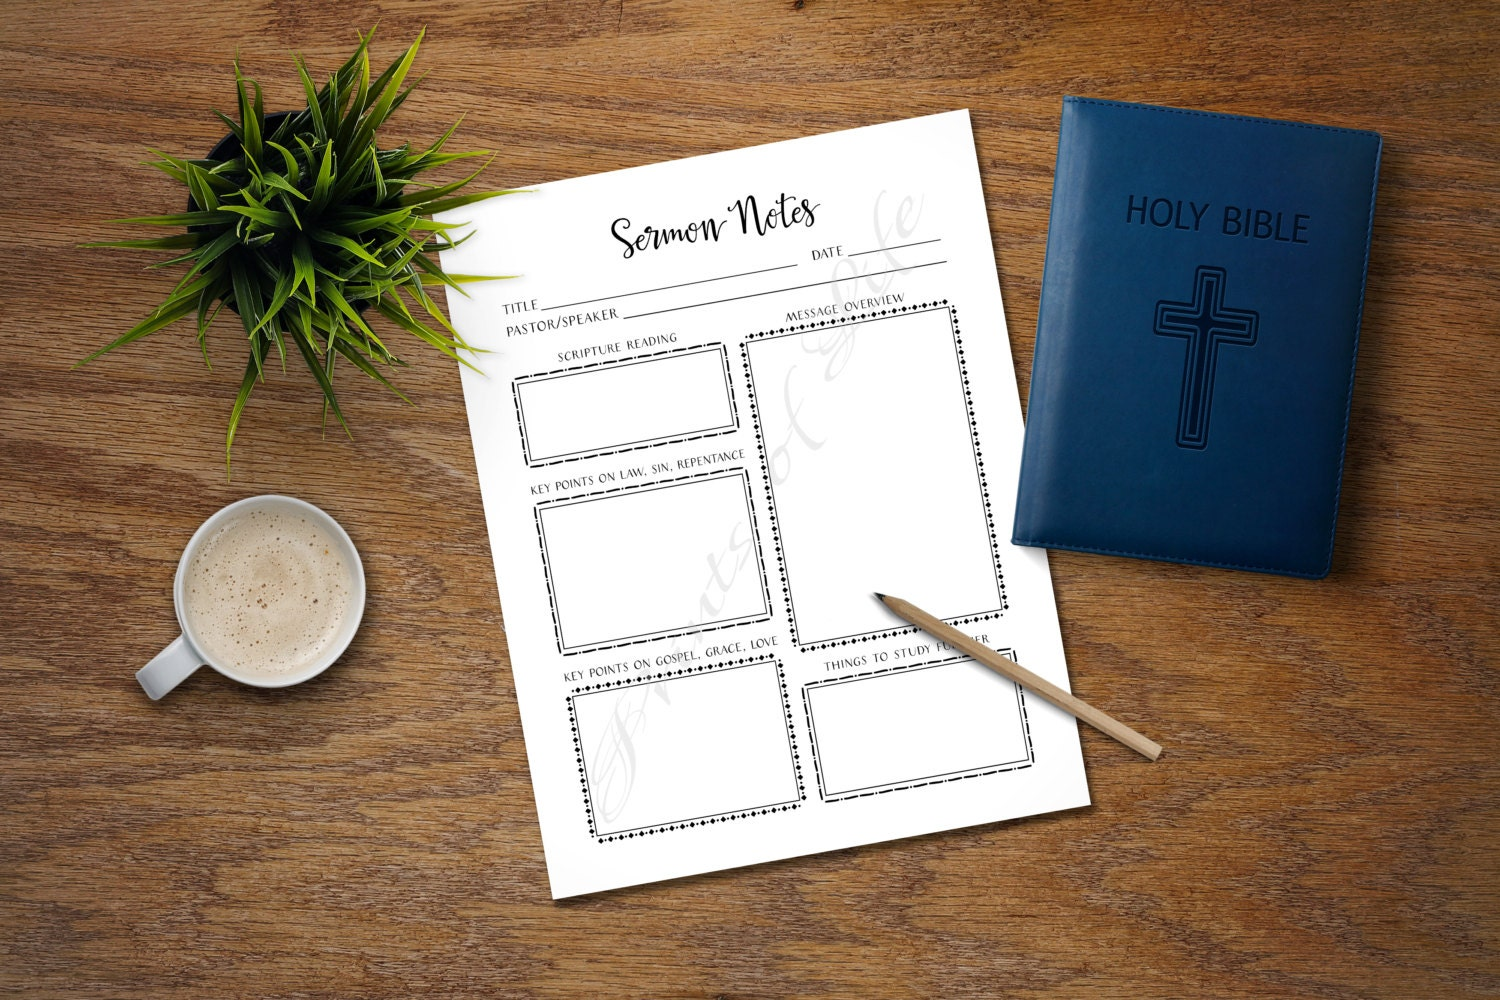 Sermon Notes  PDF printable  Instant download  Worship Notes for adults   Church journal  Bible study planner  Worksheet  Scripture  Lesson